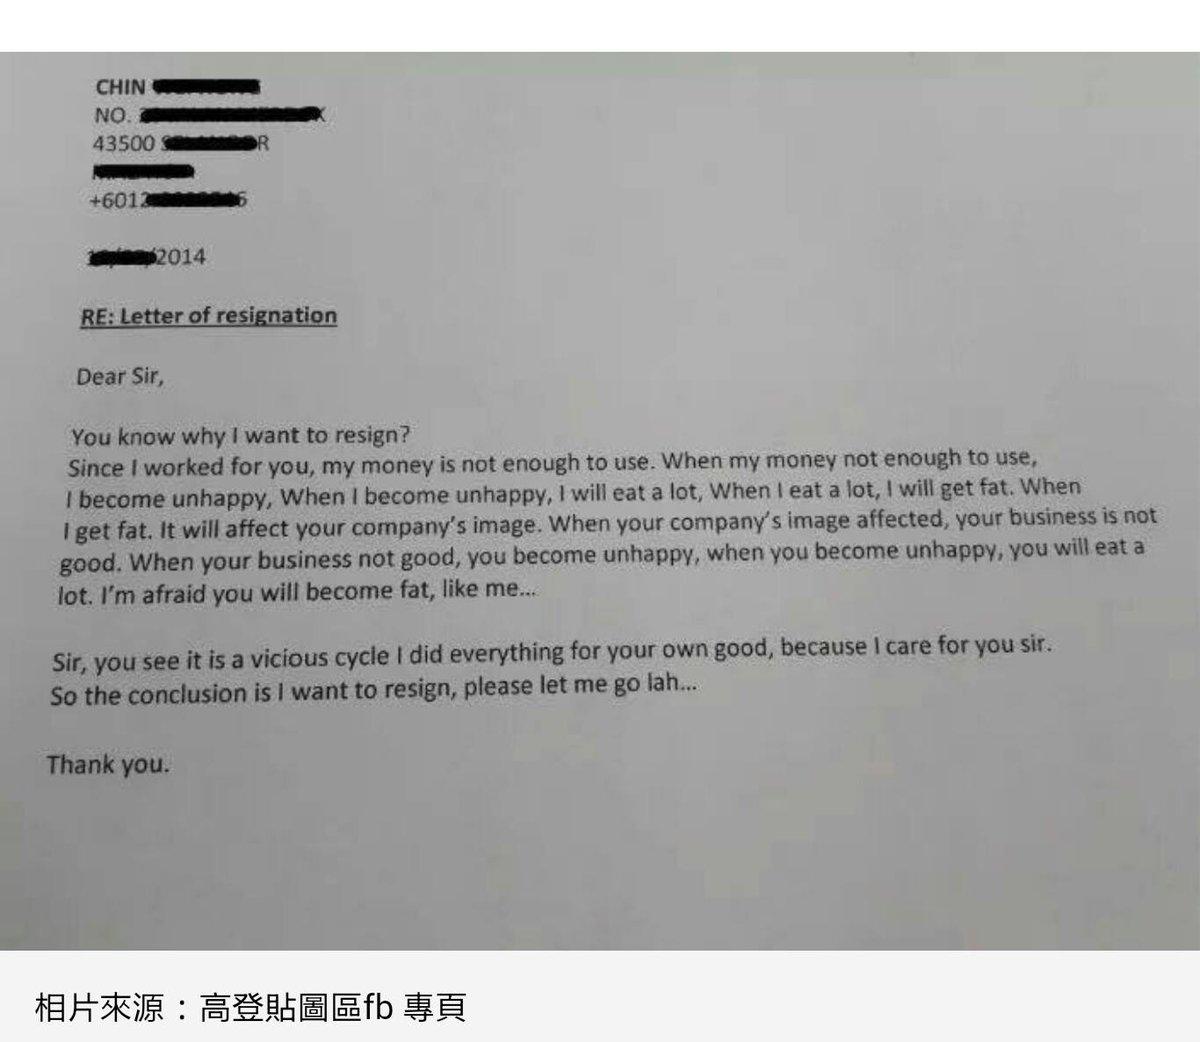 This apparently is a #Resignation Letter written by a local person in #HongKong. http://t.co/rolV5bachk